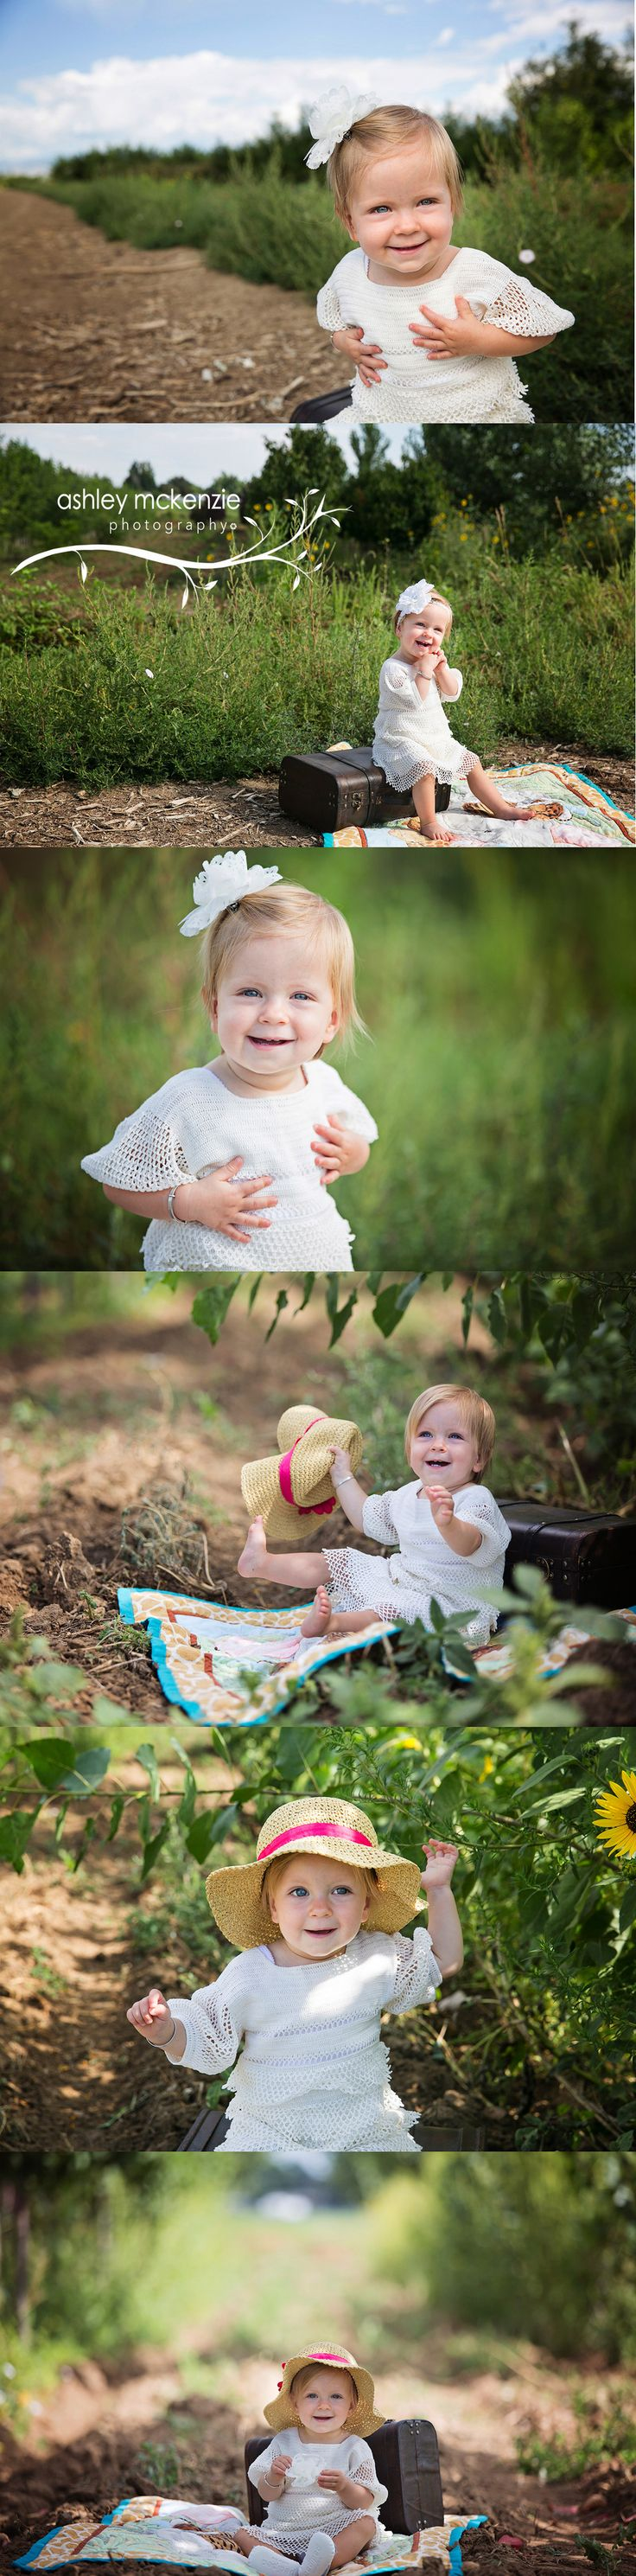 Baby Photography By Ashley McKenzie Photography in Longmont, Colorado